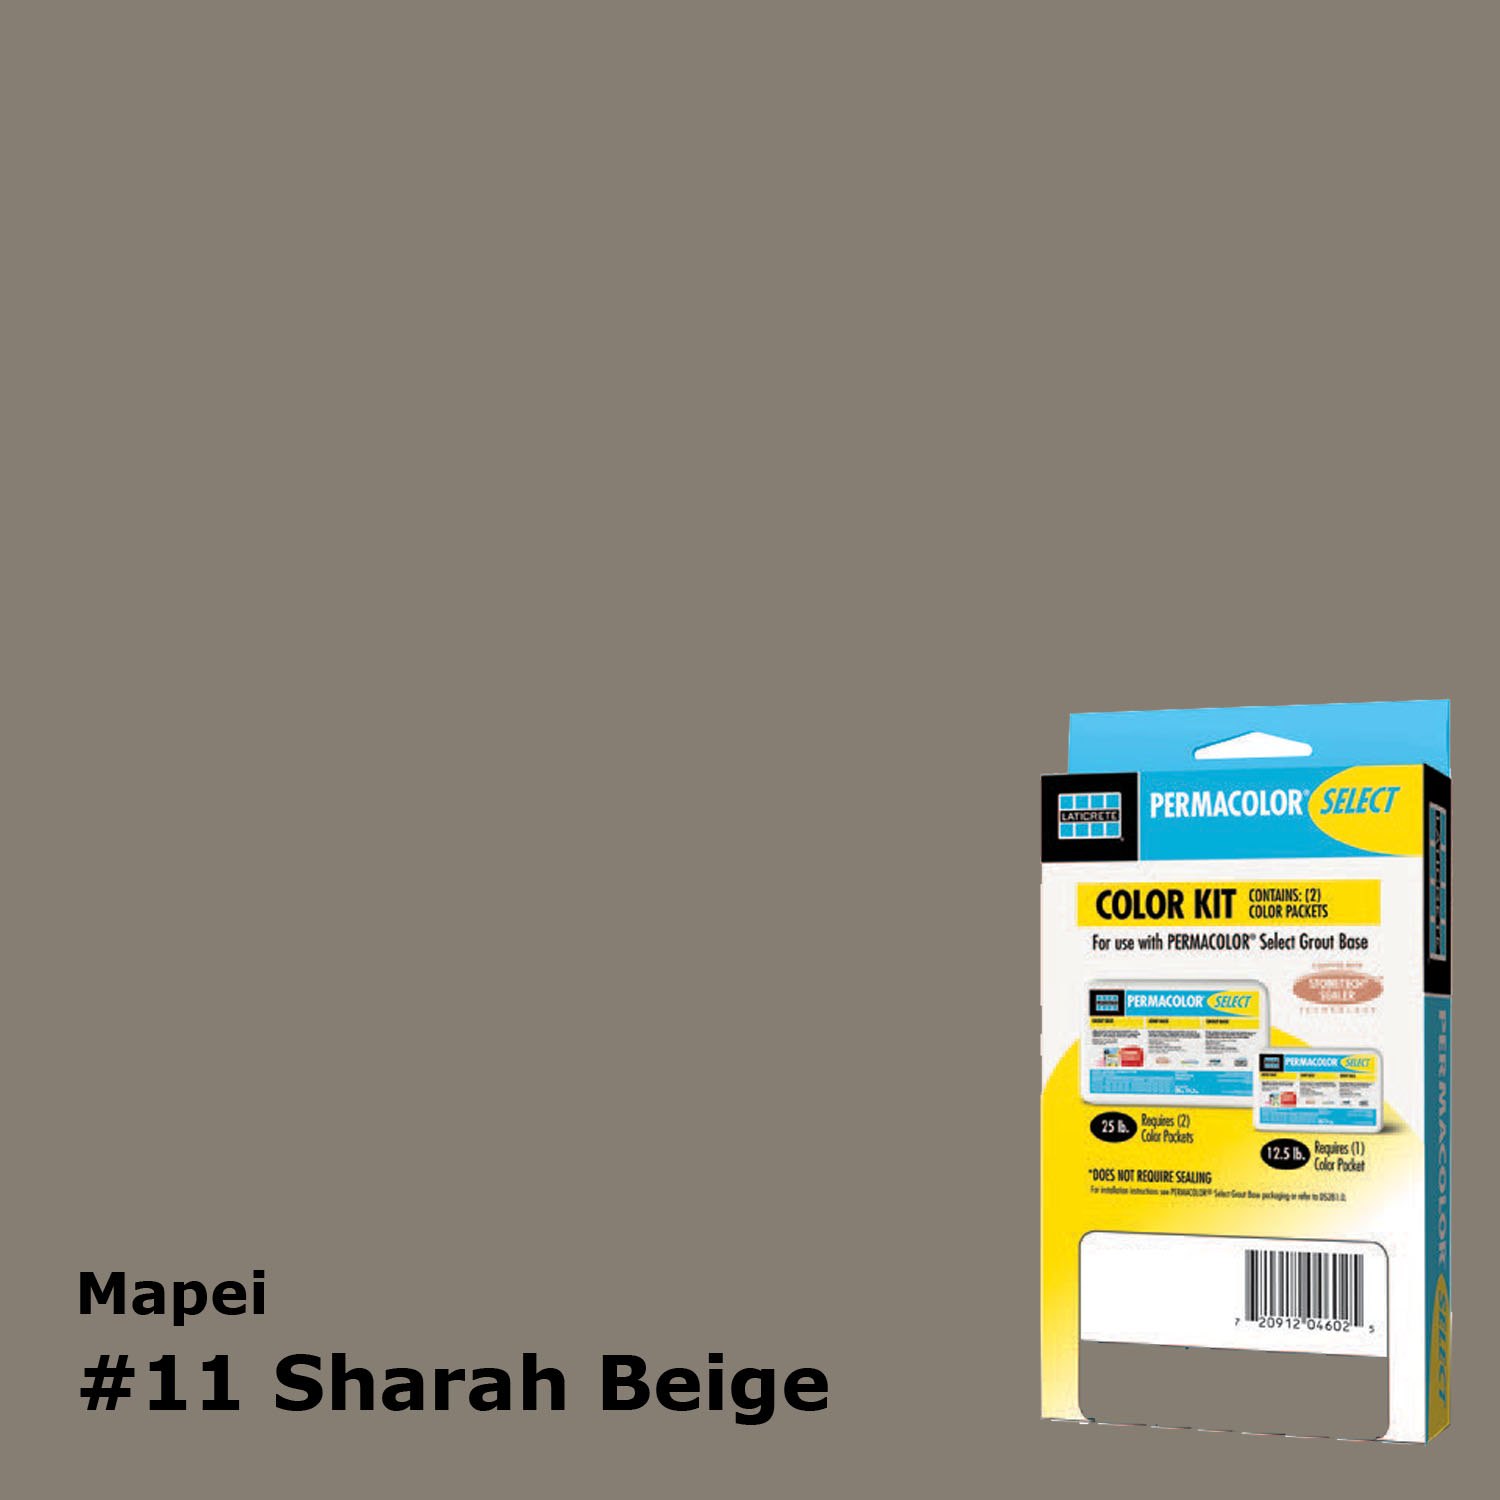 Magnificent Mapei Grout Colors 11 Mapei Shara Beige Mapei Grout Colors Timberwolf Mapei Grout Colors Avalanche houzz 01 Mapei Grout Colors